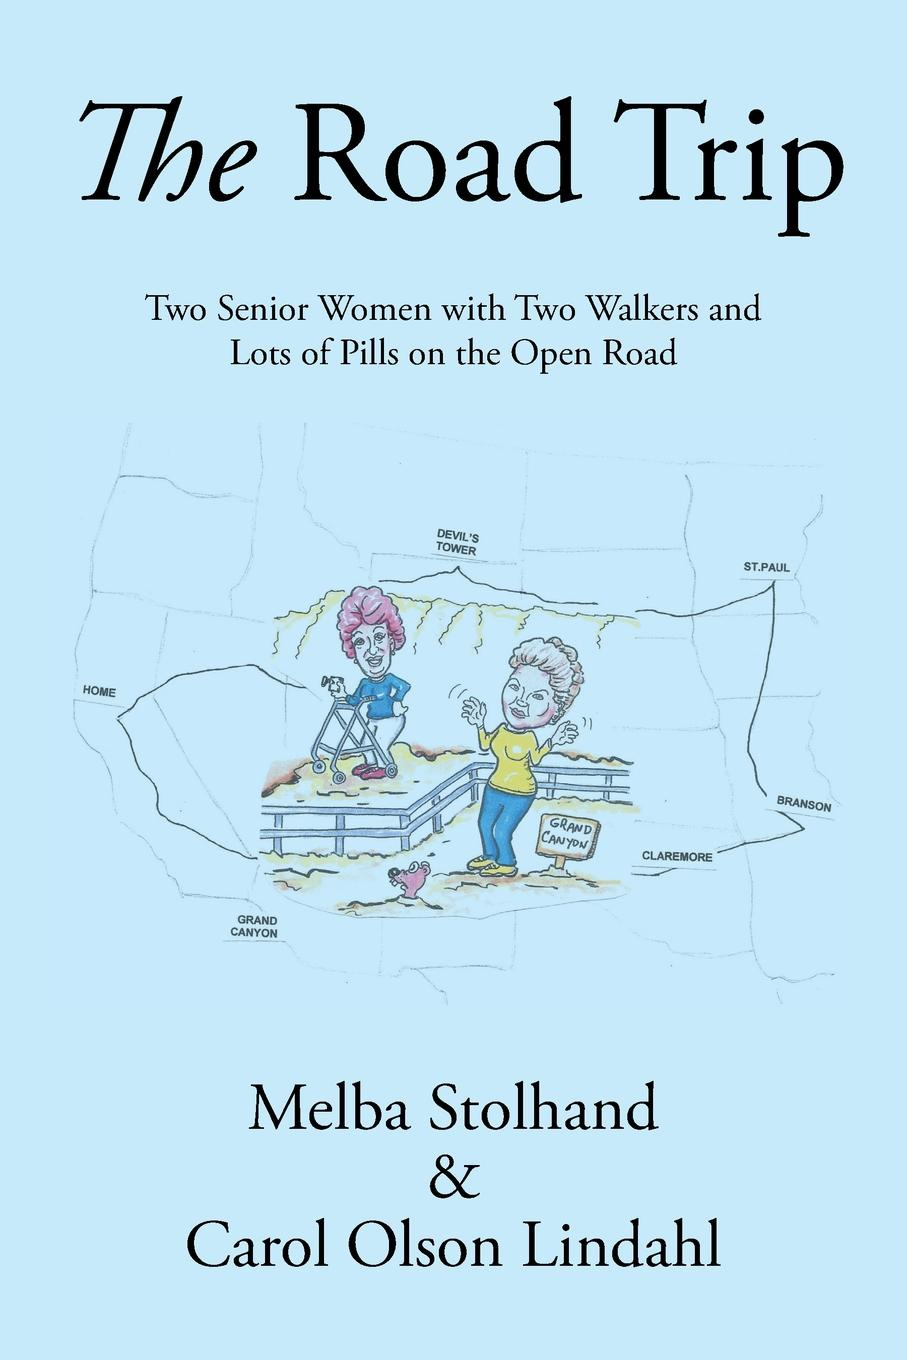 Фото - Melba Stolhand, Carol Olson Lindahl The Road Trip. Two Senior Women with Two Walkers and Lots of Pills on the Open Road on the road the original scroll